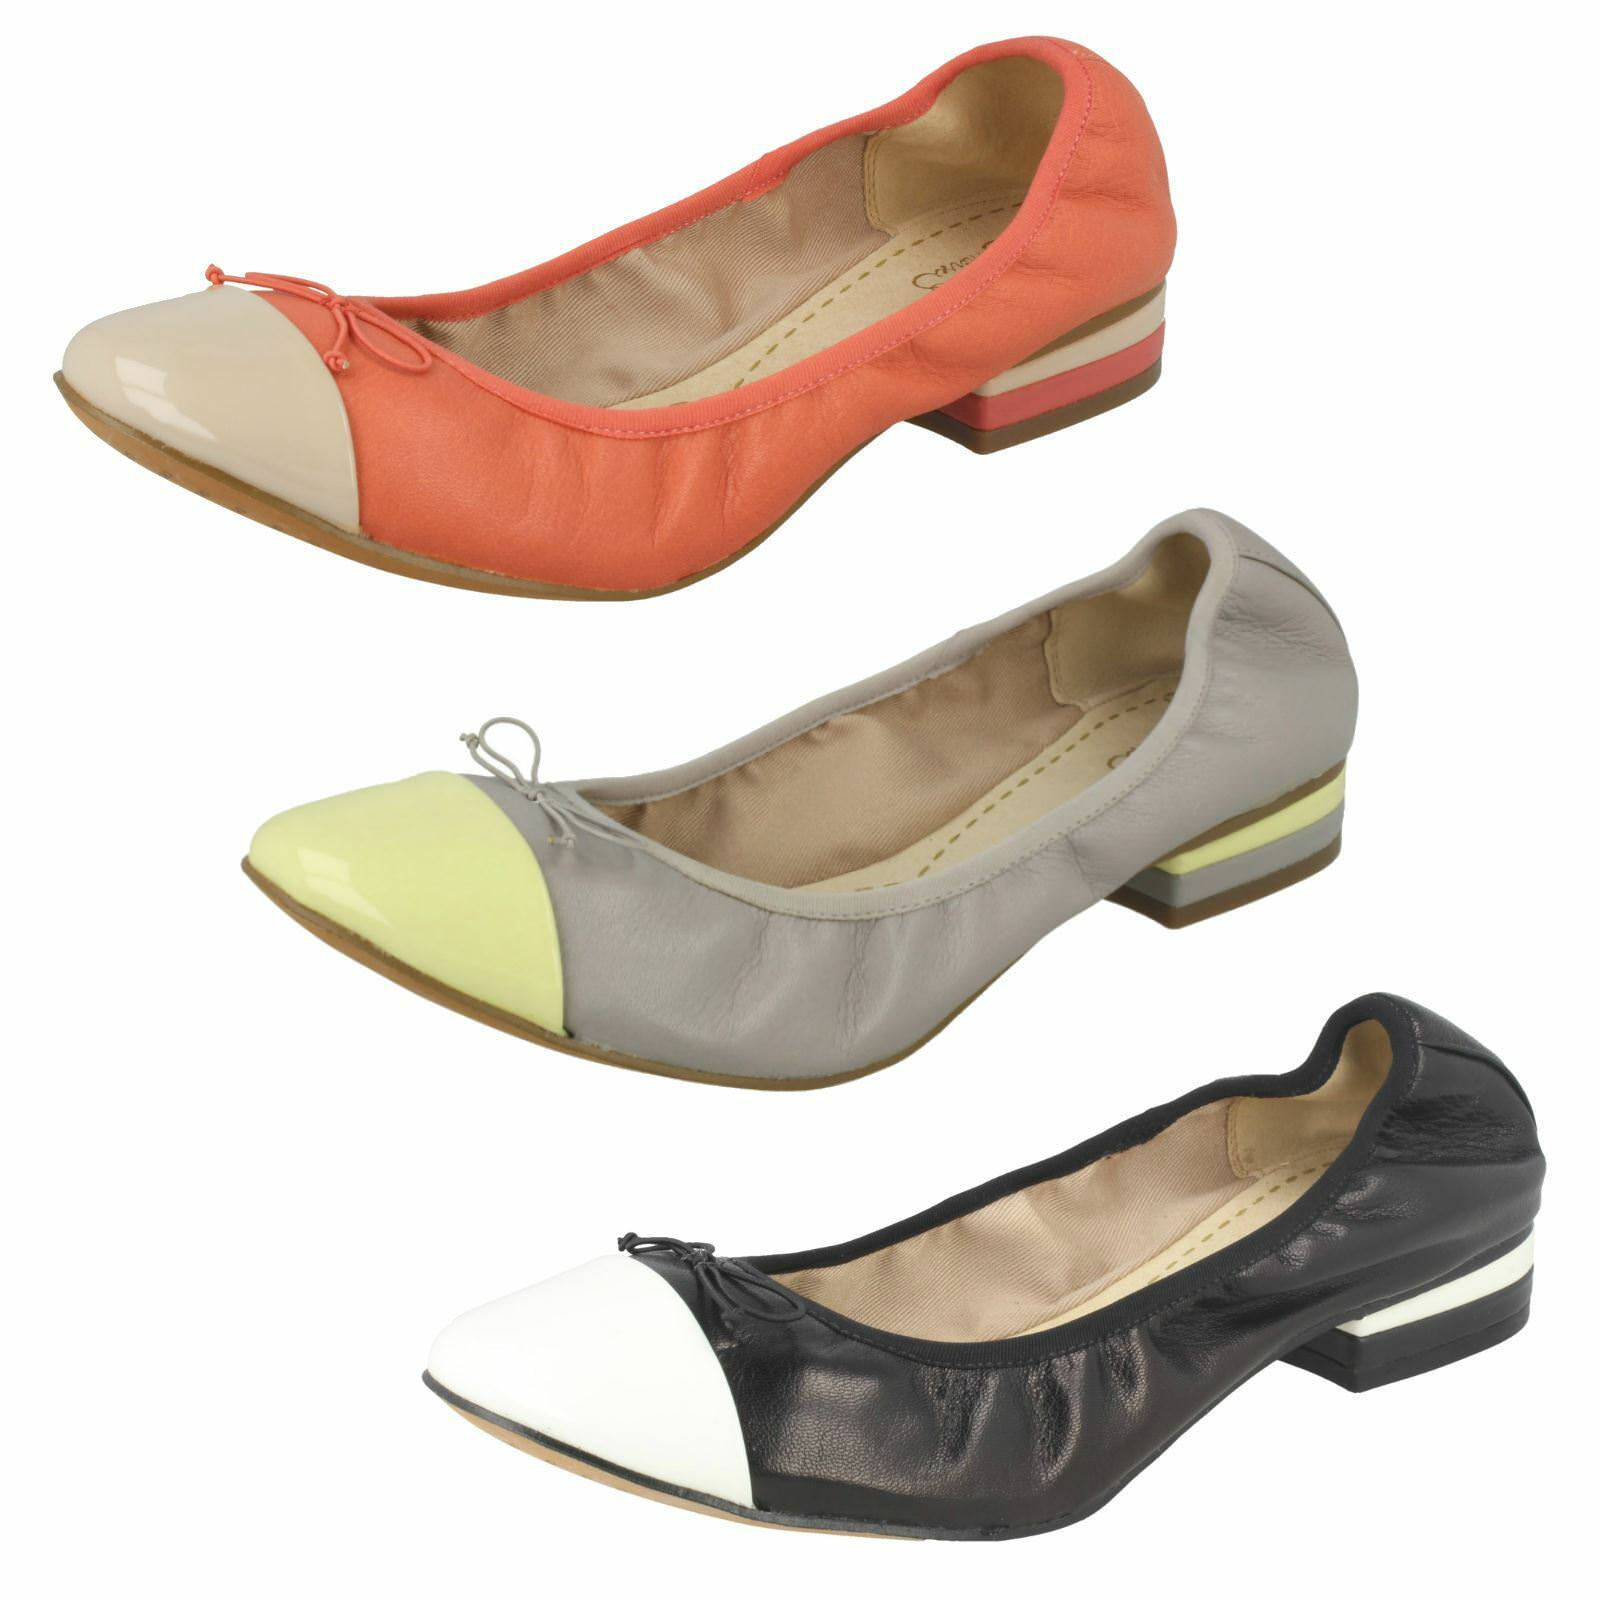 Mesdames Clarks Chaussures De Loisirs Chaussures-Ditsy Robe